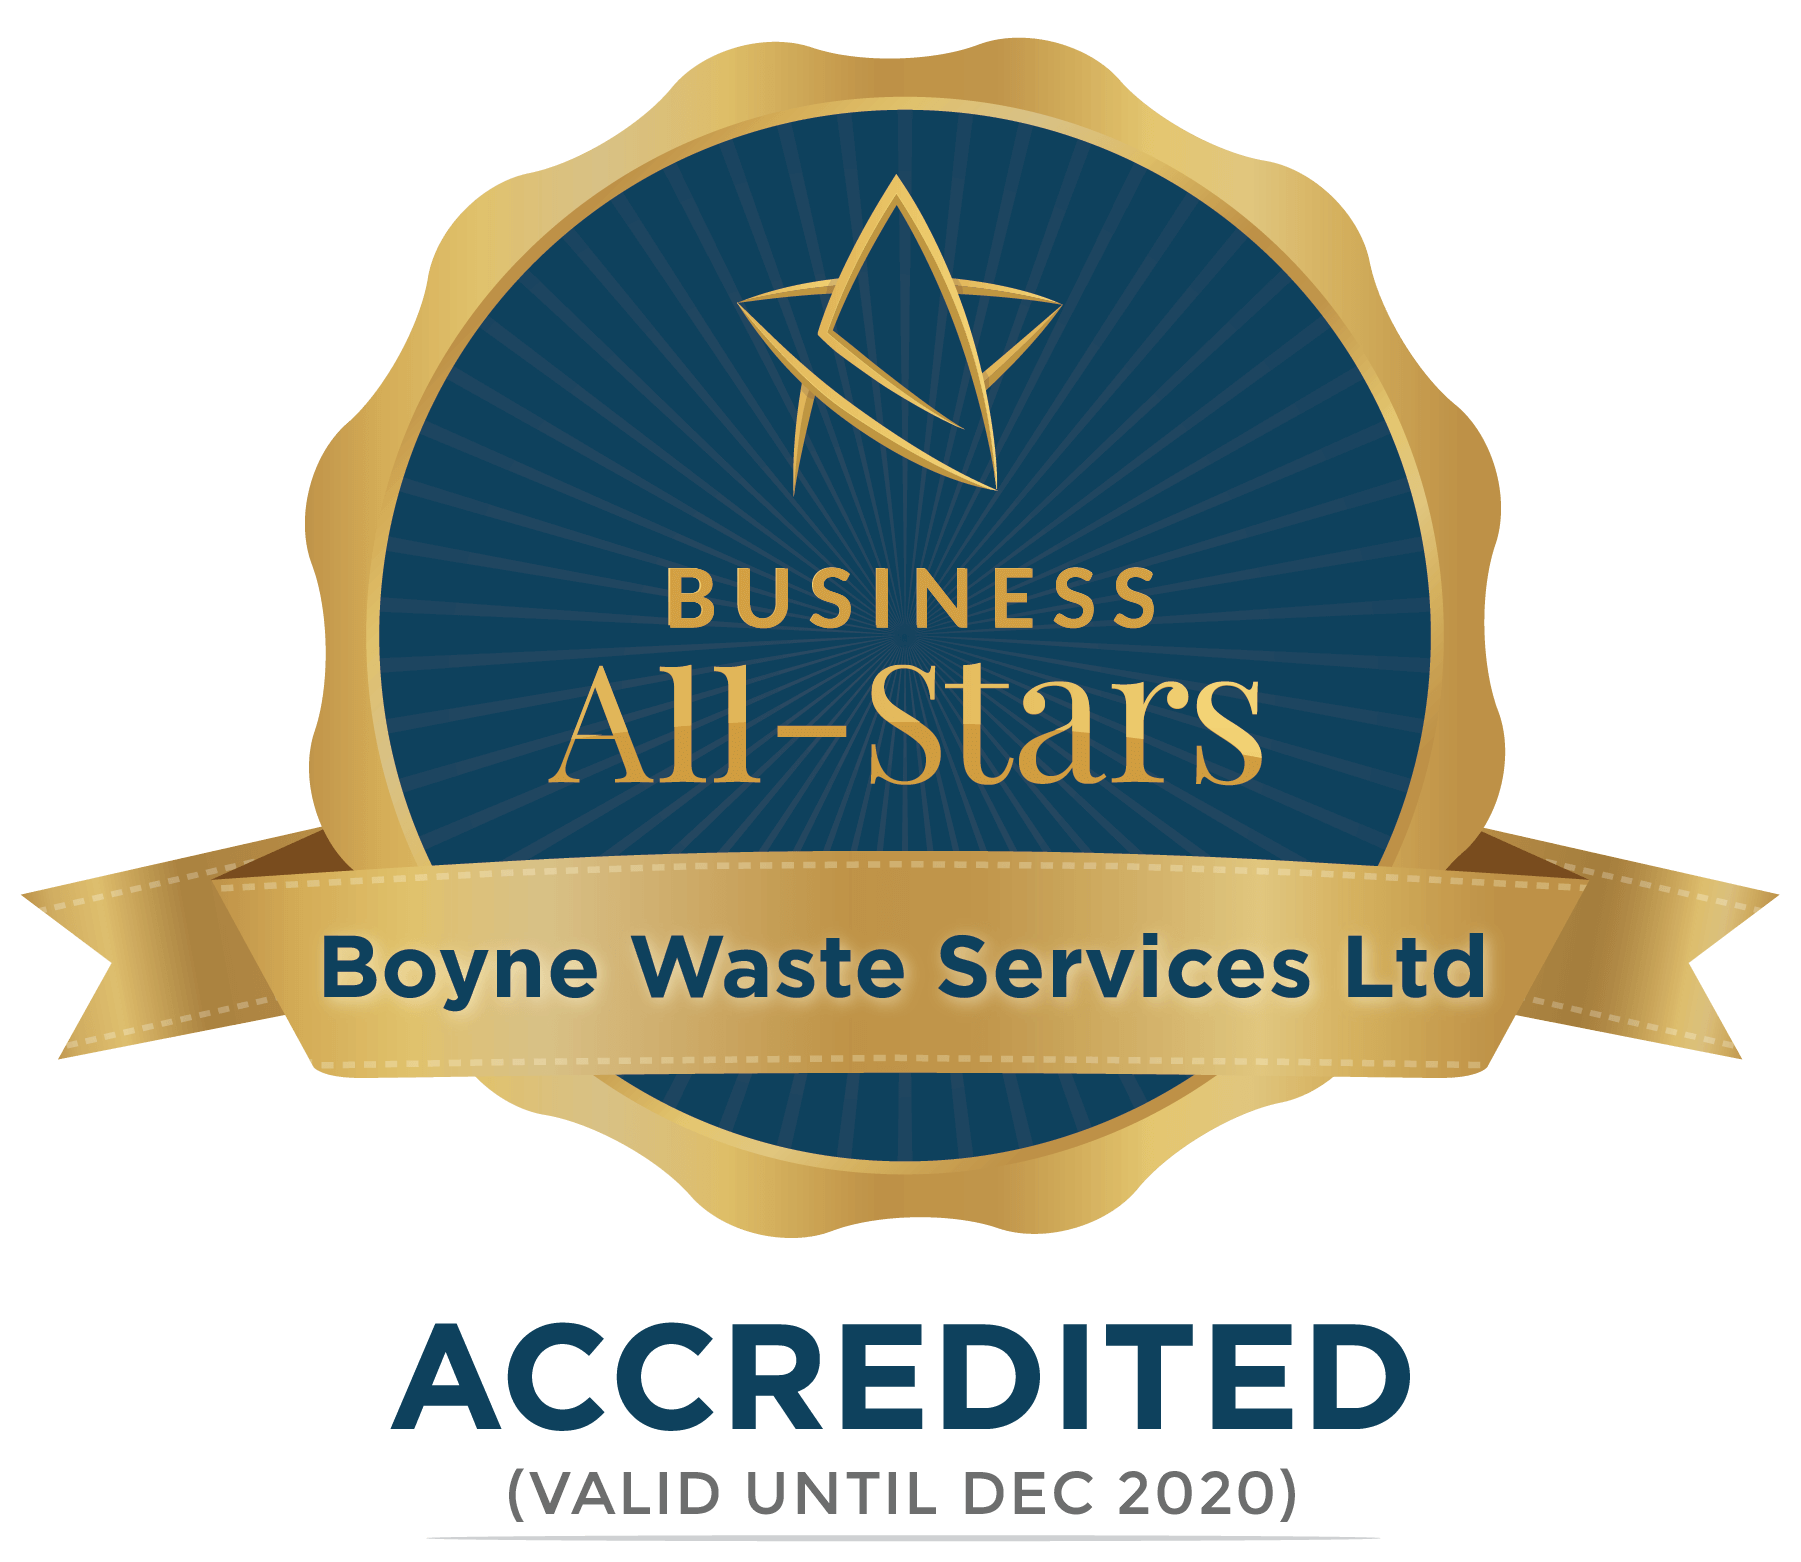 Boyne Waste Services Ltd - Business All-Stars Accreditation